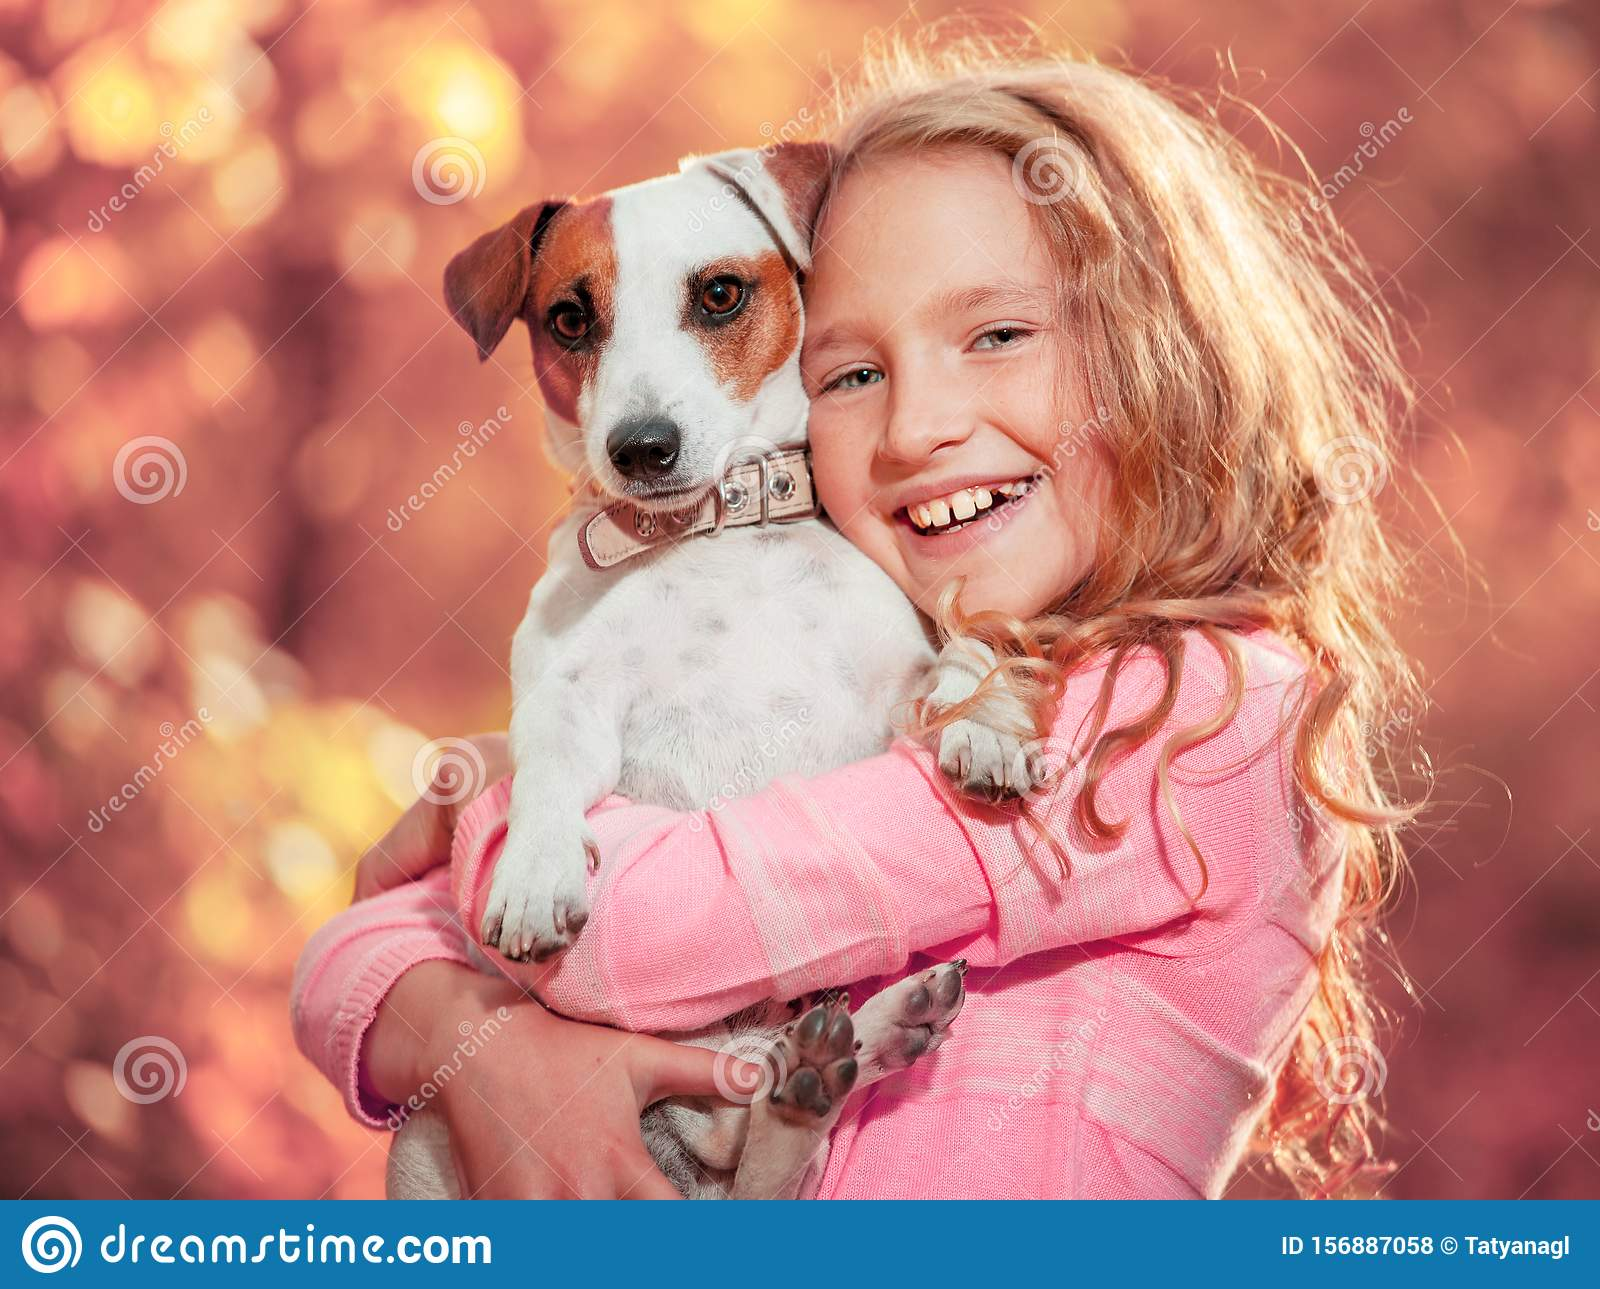 Child with dog at autumn